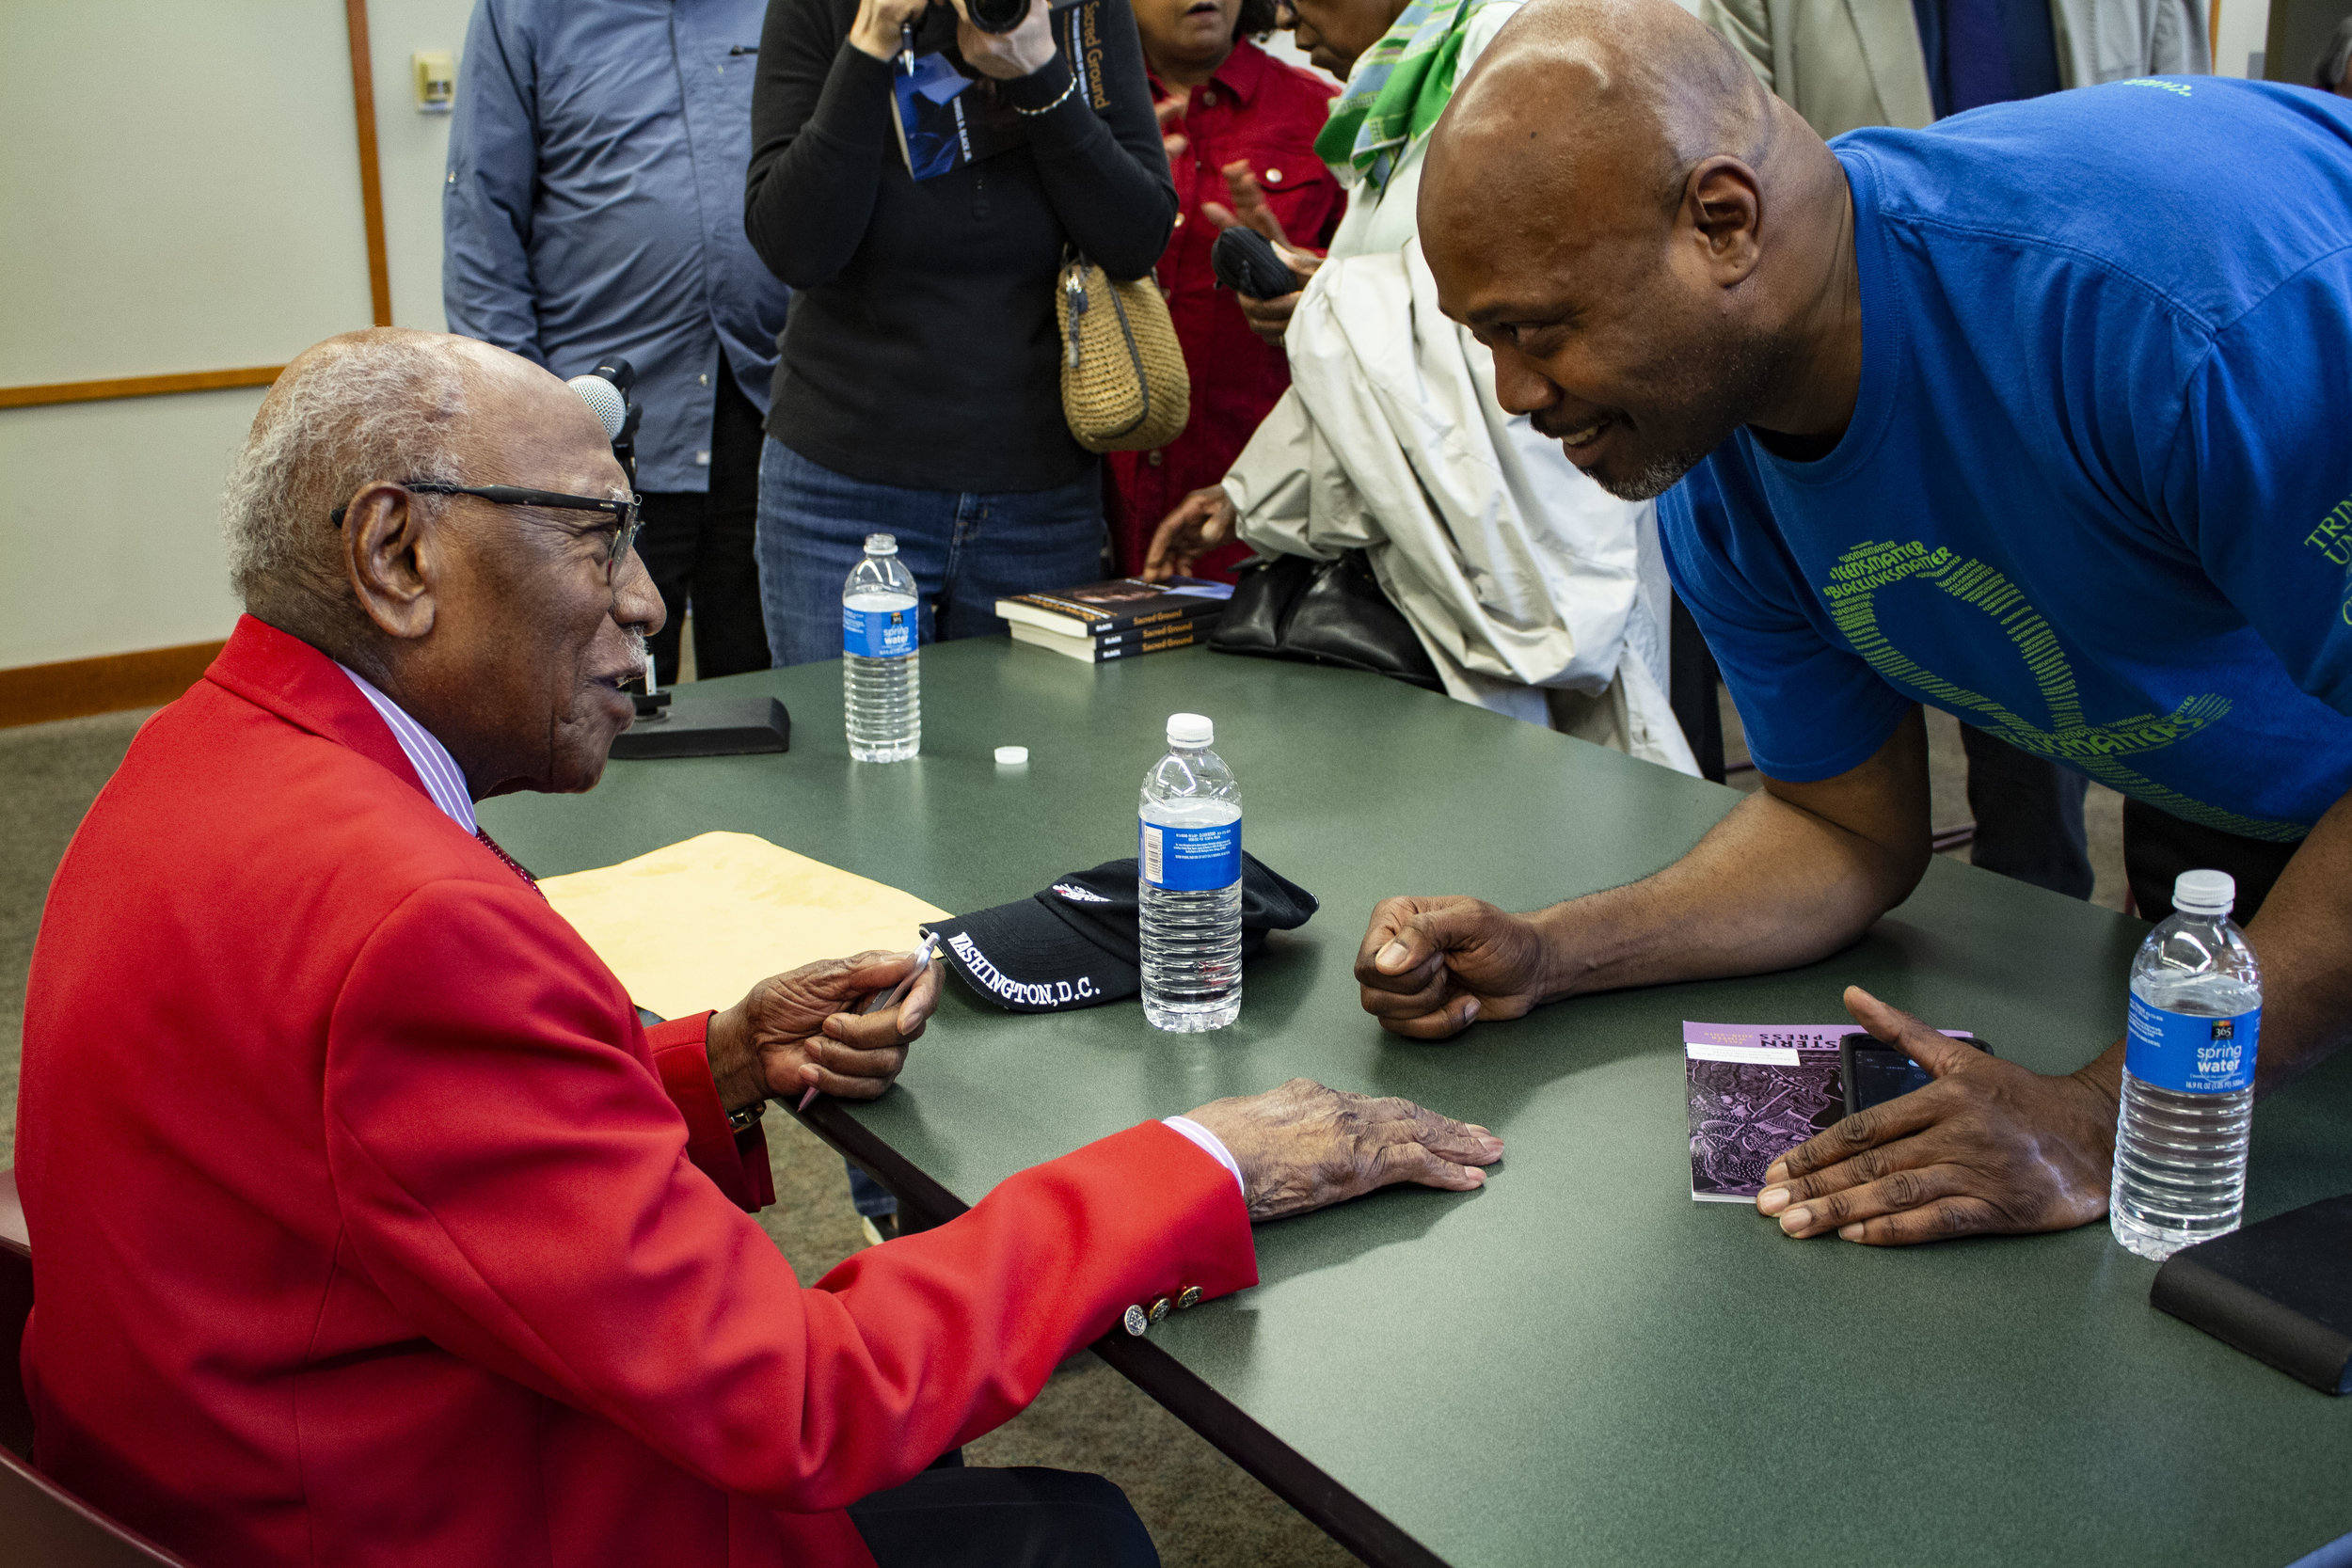 Timuel Black greets an attendee at the book signing following his event at Evanston Public Library.